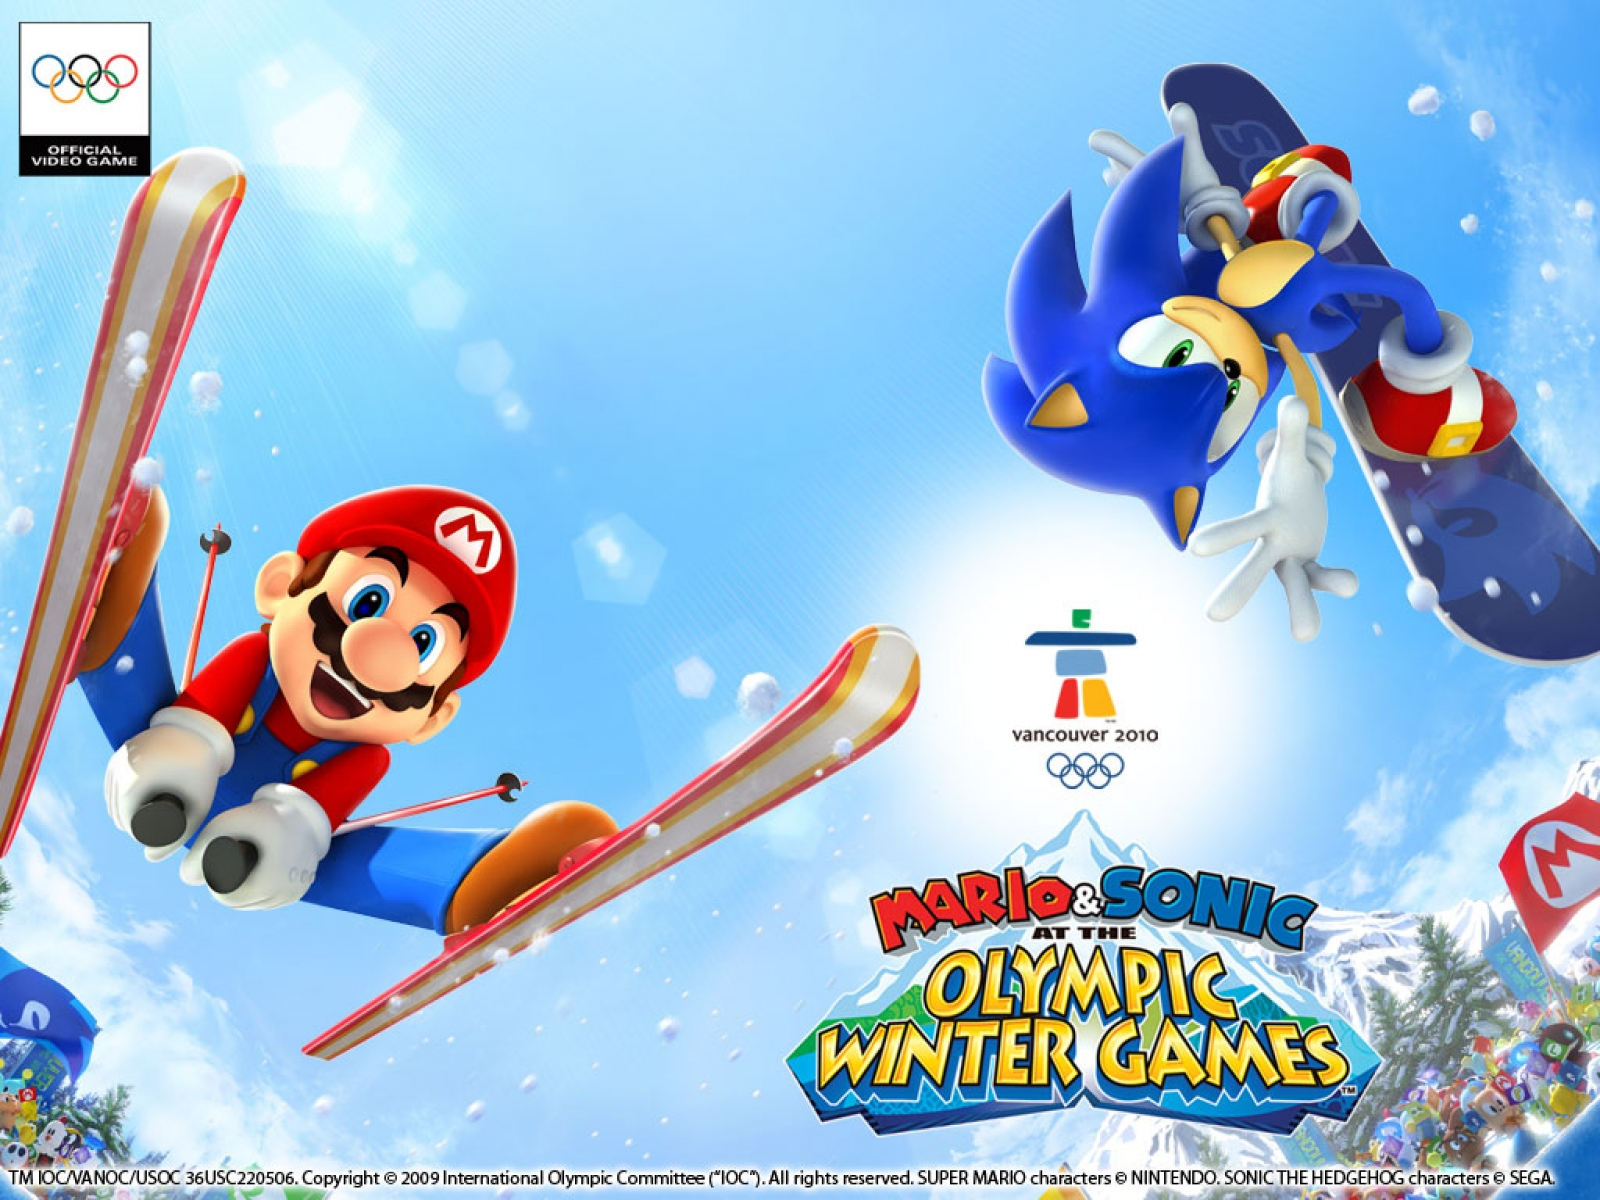 Wii U Screen Savers : Mario and sonic at the olympic winter games wallpaper